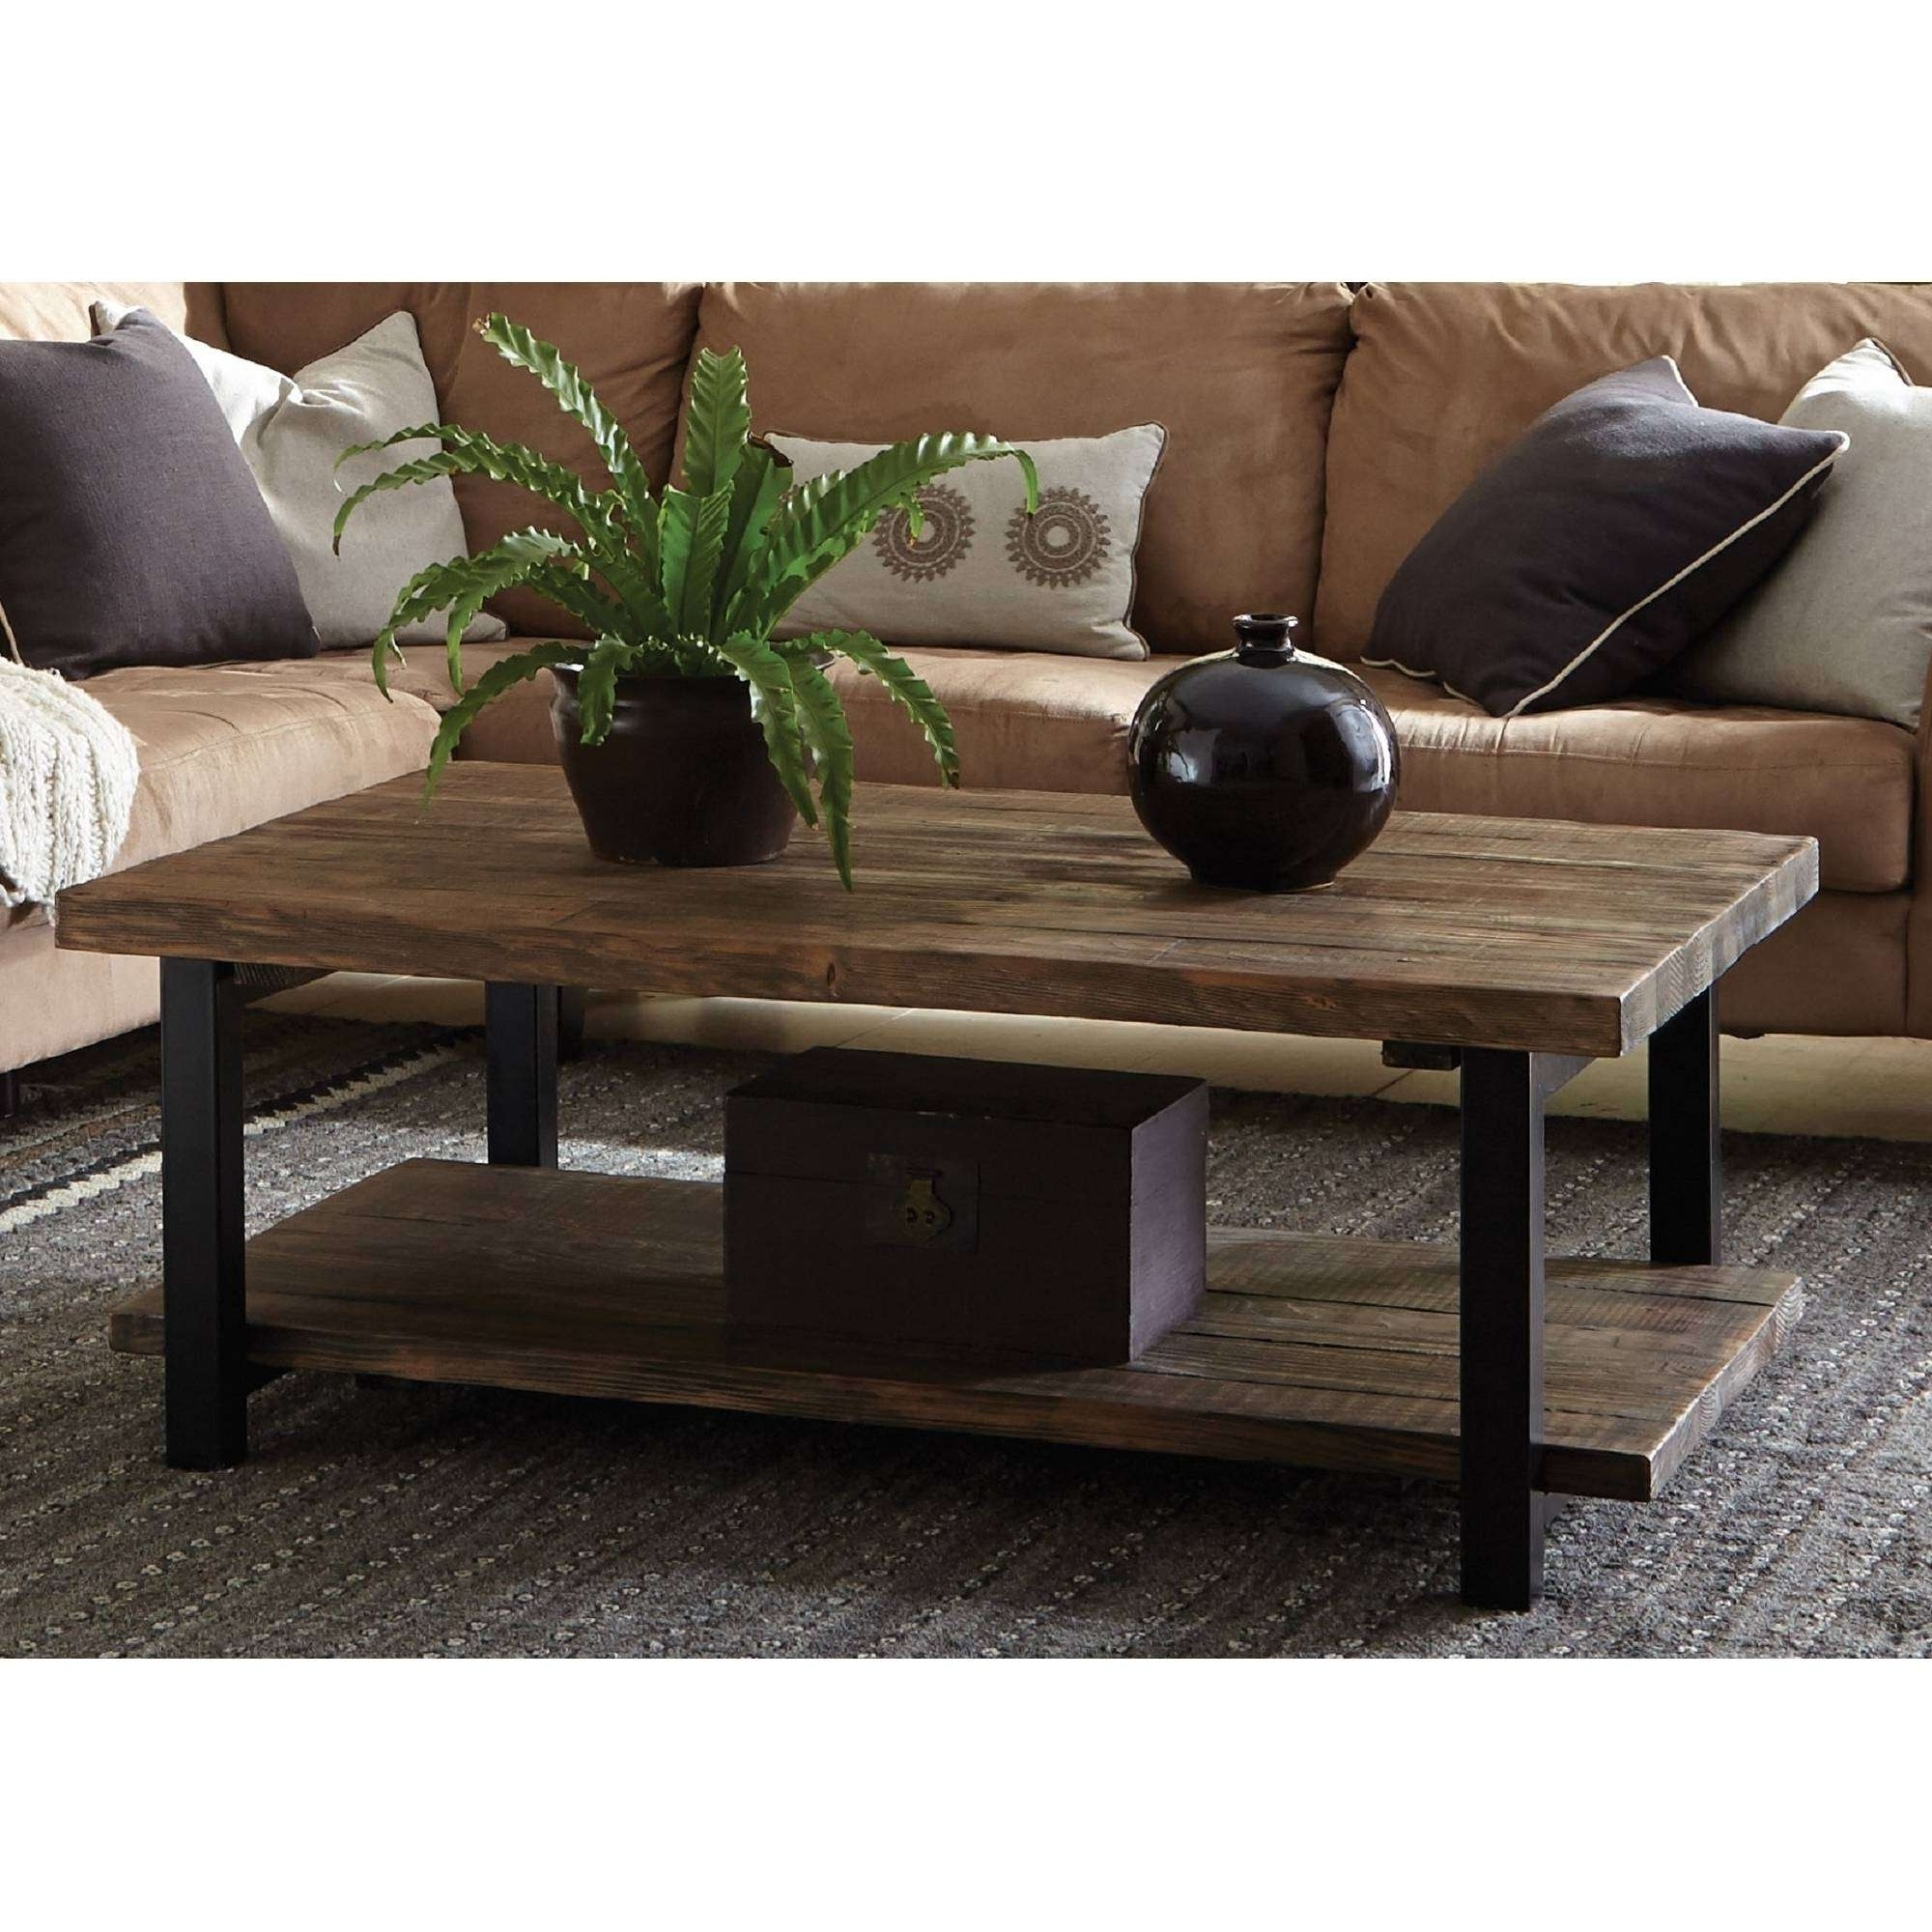 Coffee Table : Magnificent Cheap Coffee Tables White Round Coffee Throughout Well Known Cheap Coffee Tables With Storage (View 6 of 20)